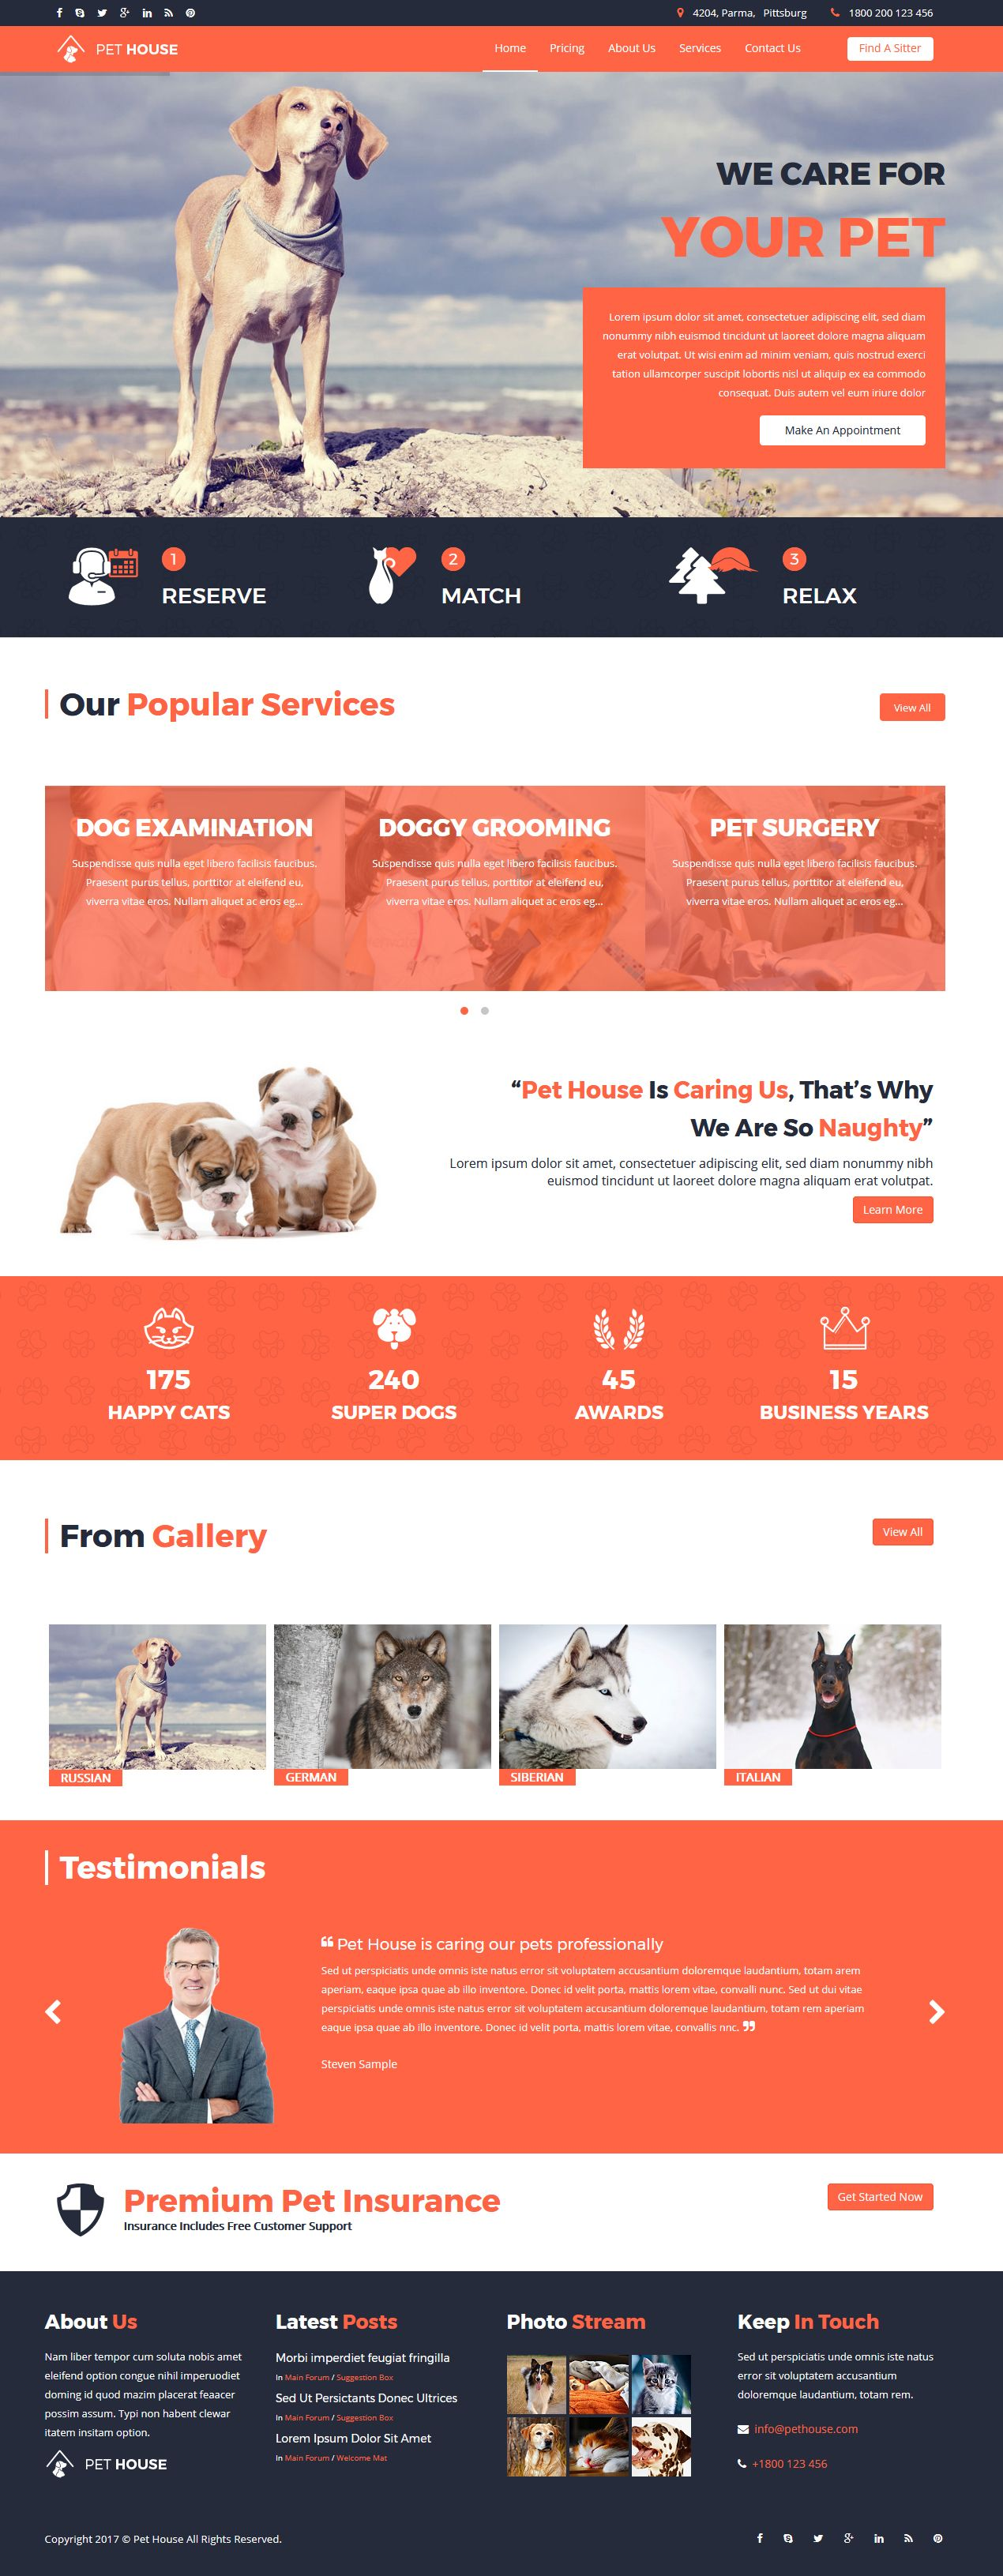 Pet House - Pet Care Joomla Template Screenshot 2